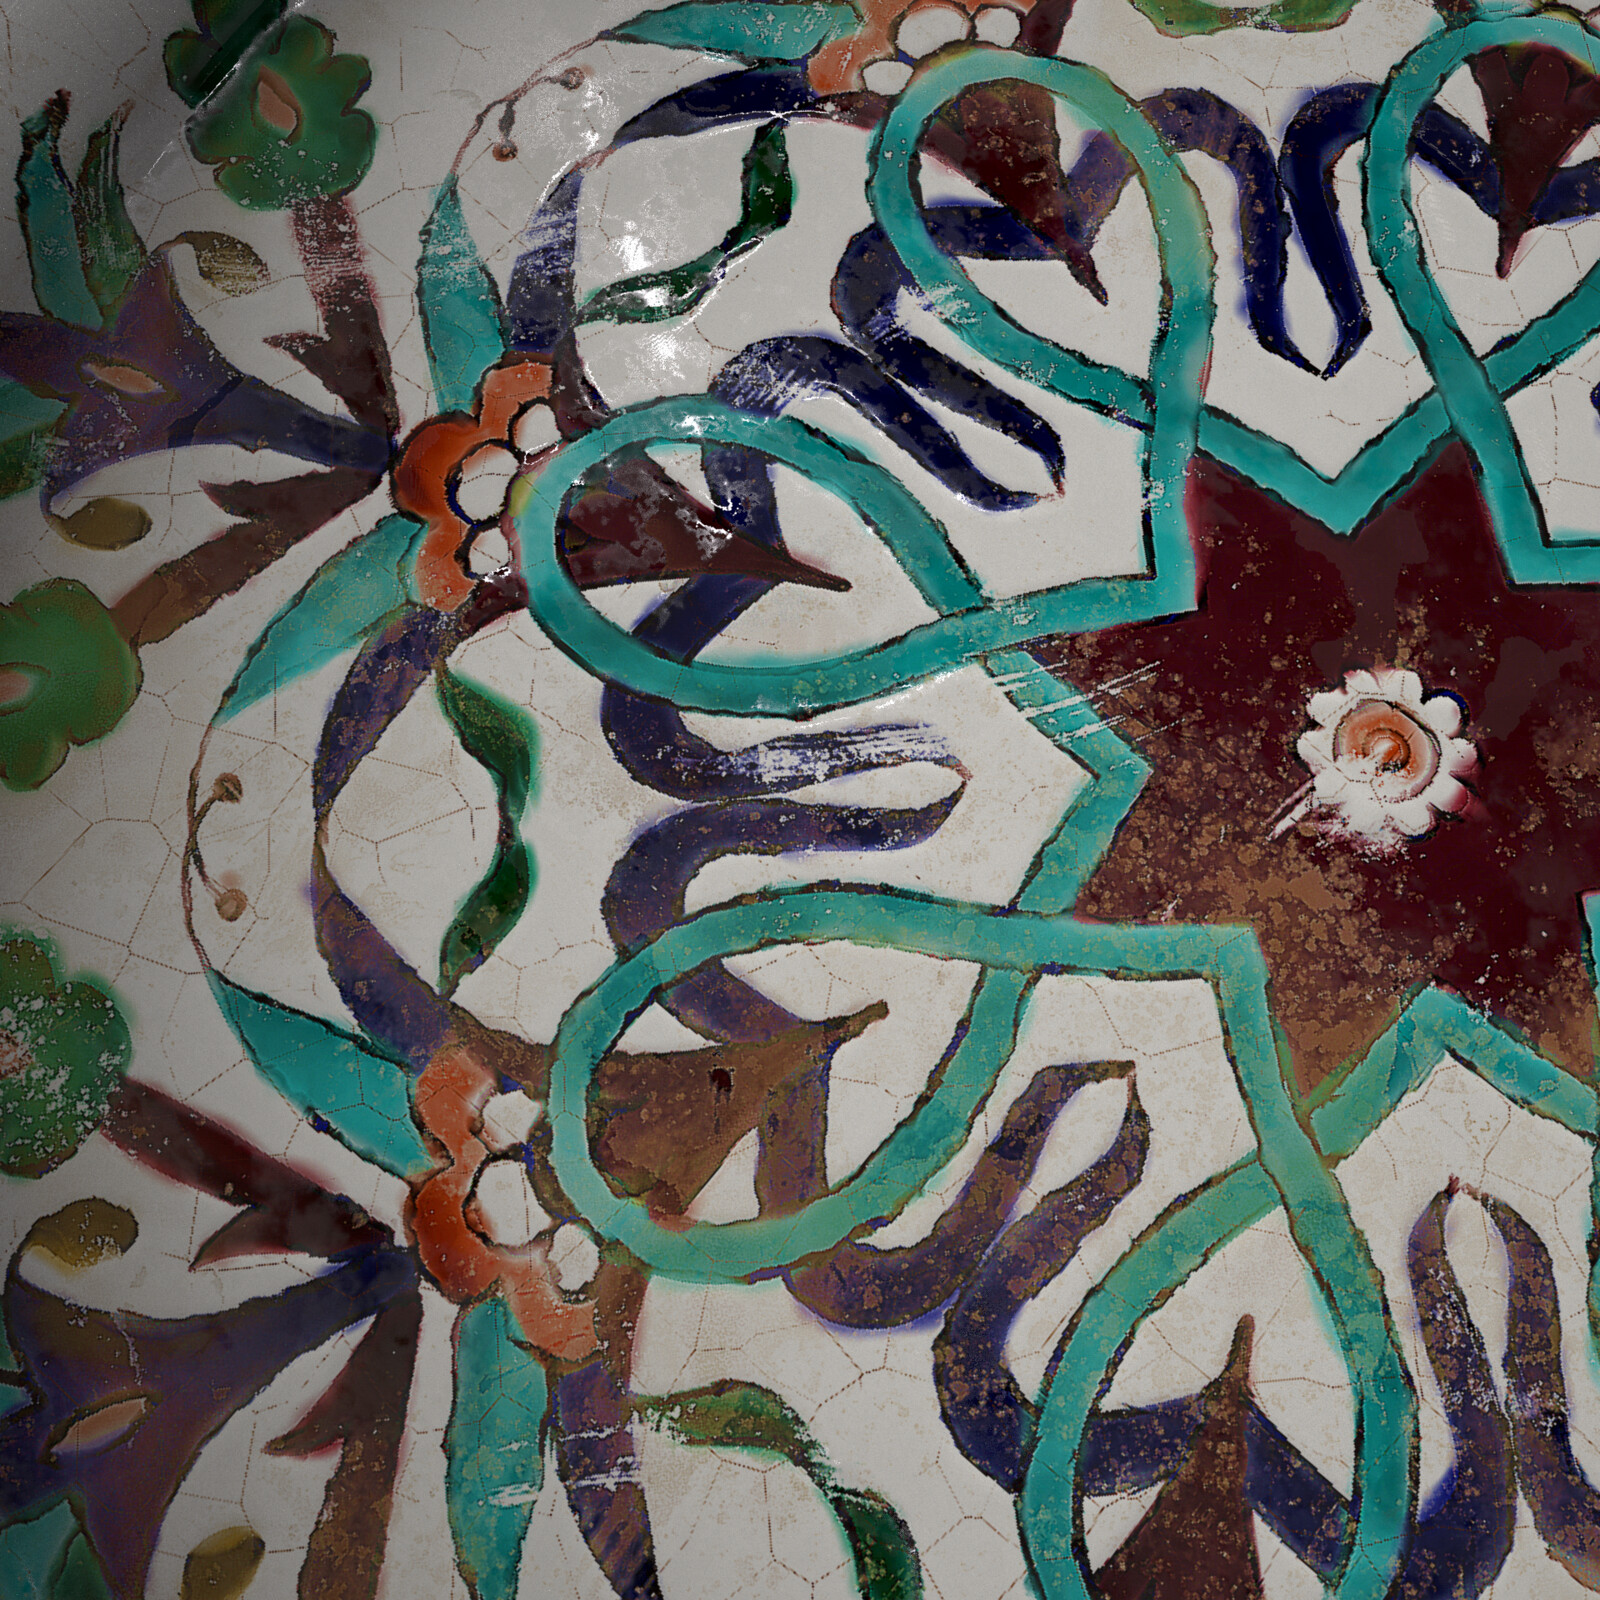 Detail from 18th-century Ceramic Tile Plate, high painting defects, natural color palette  (iRay render)